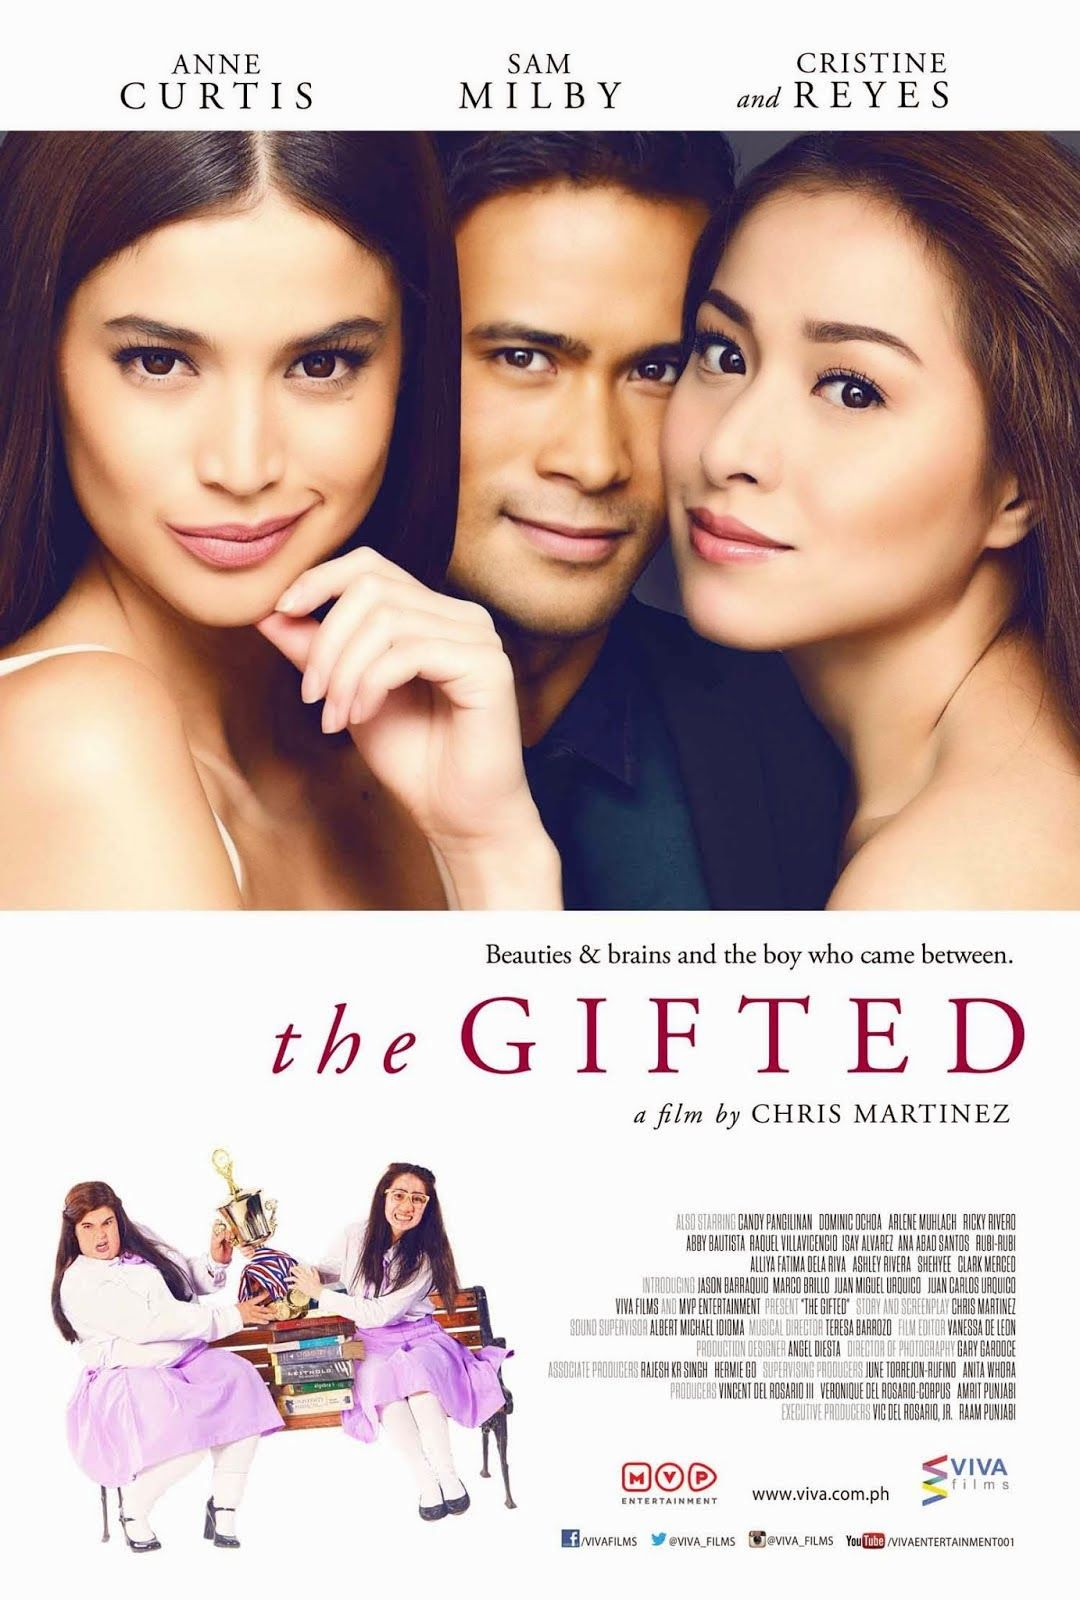 The Gifted Philippines 2014 Movie Starring Anne Curtis Sam Milby And Cristine Reyes 7 10 Free Movies Online Comedy Films Romance Comedy